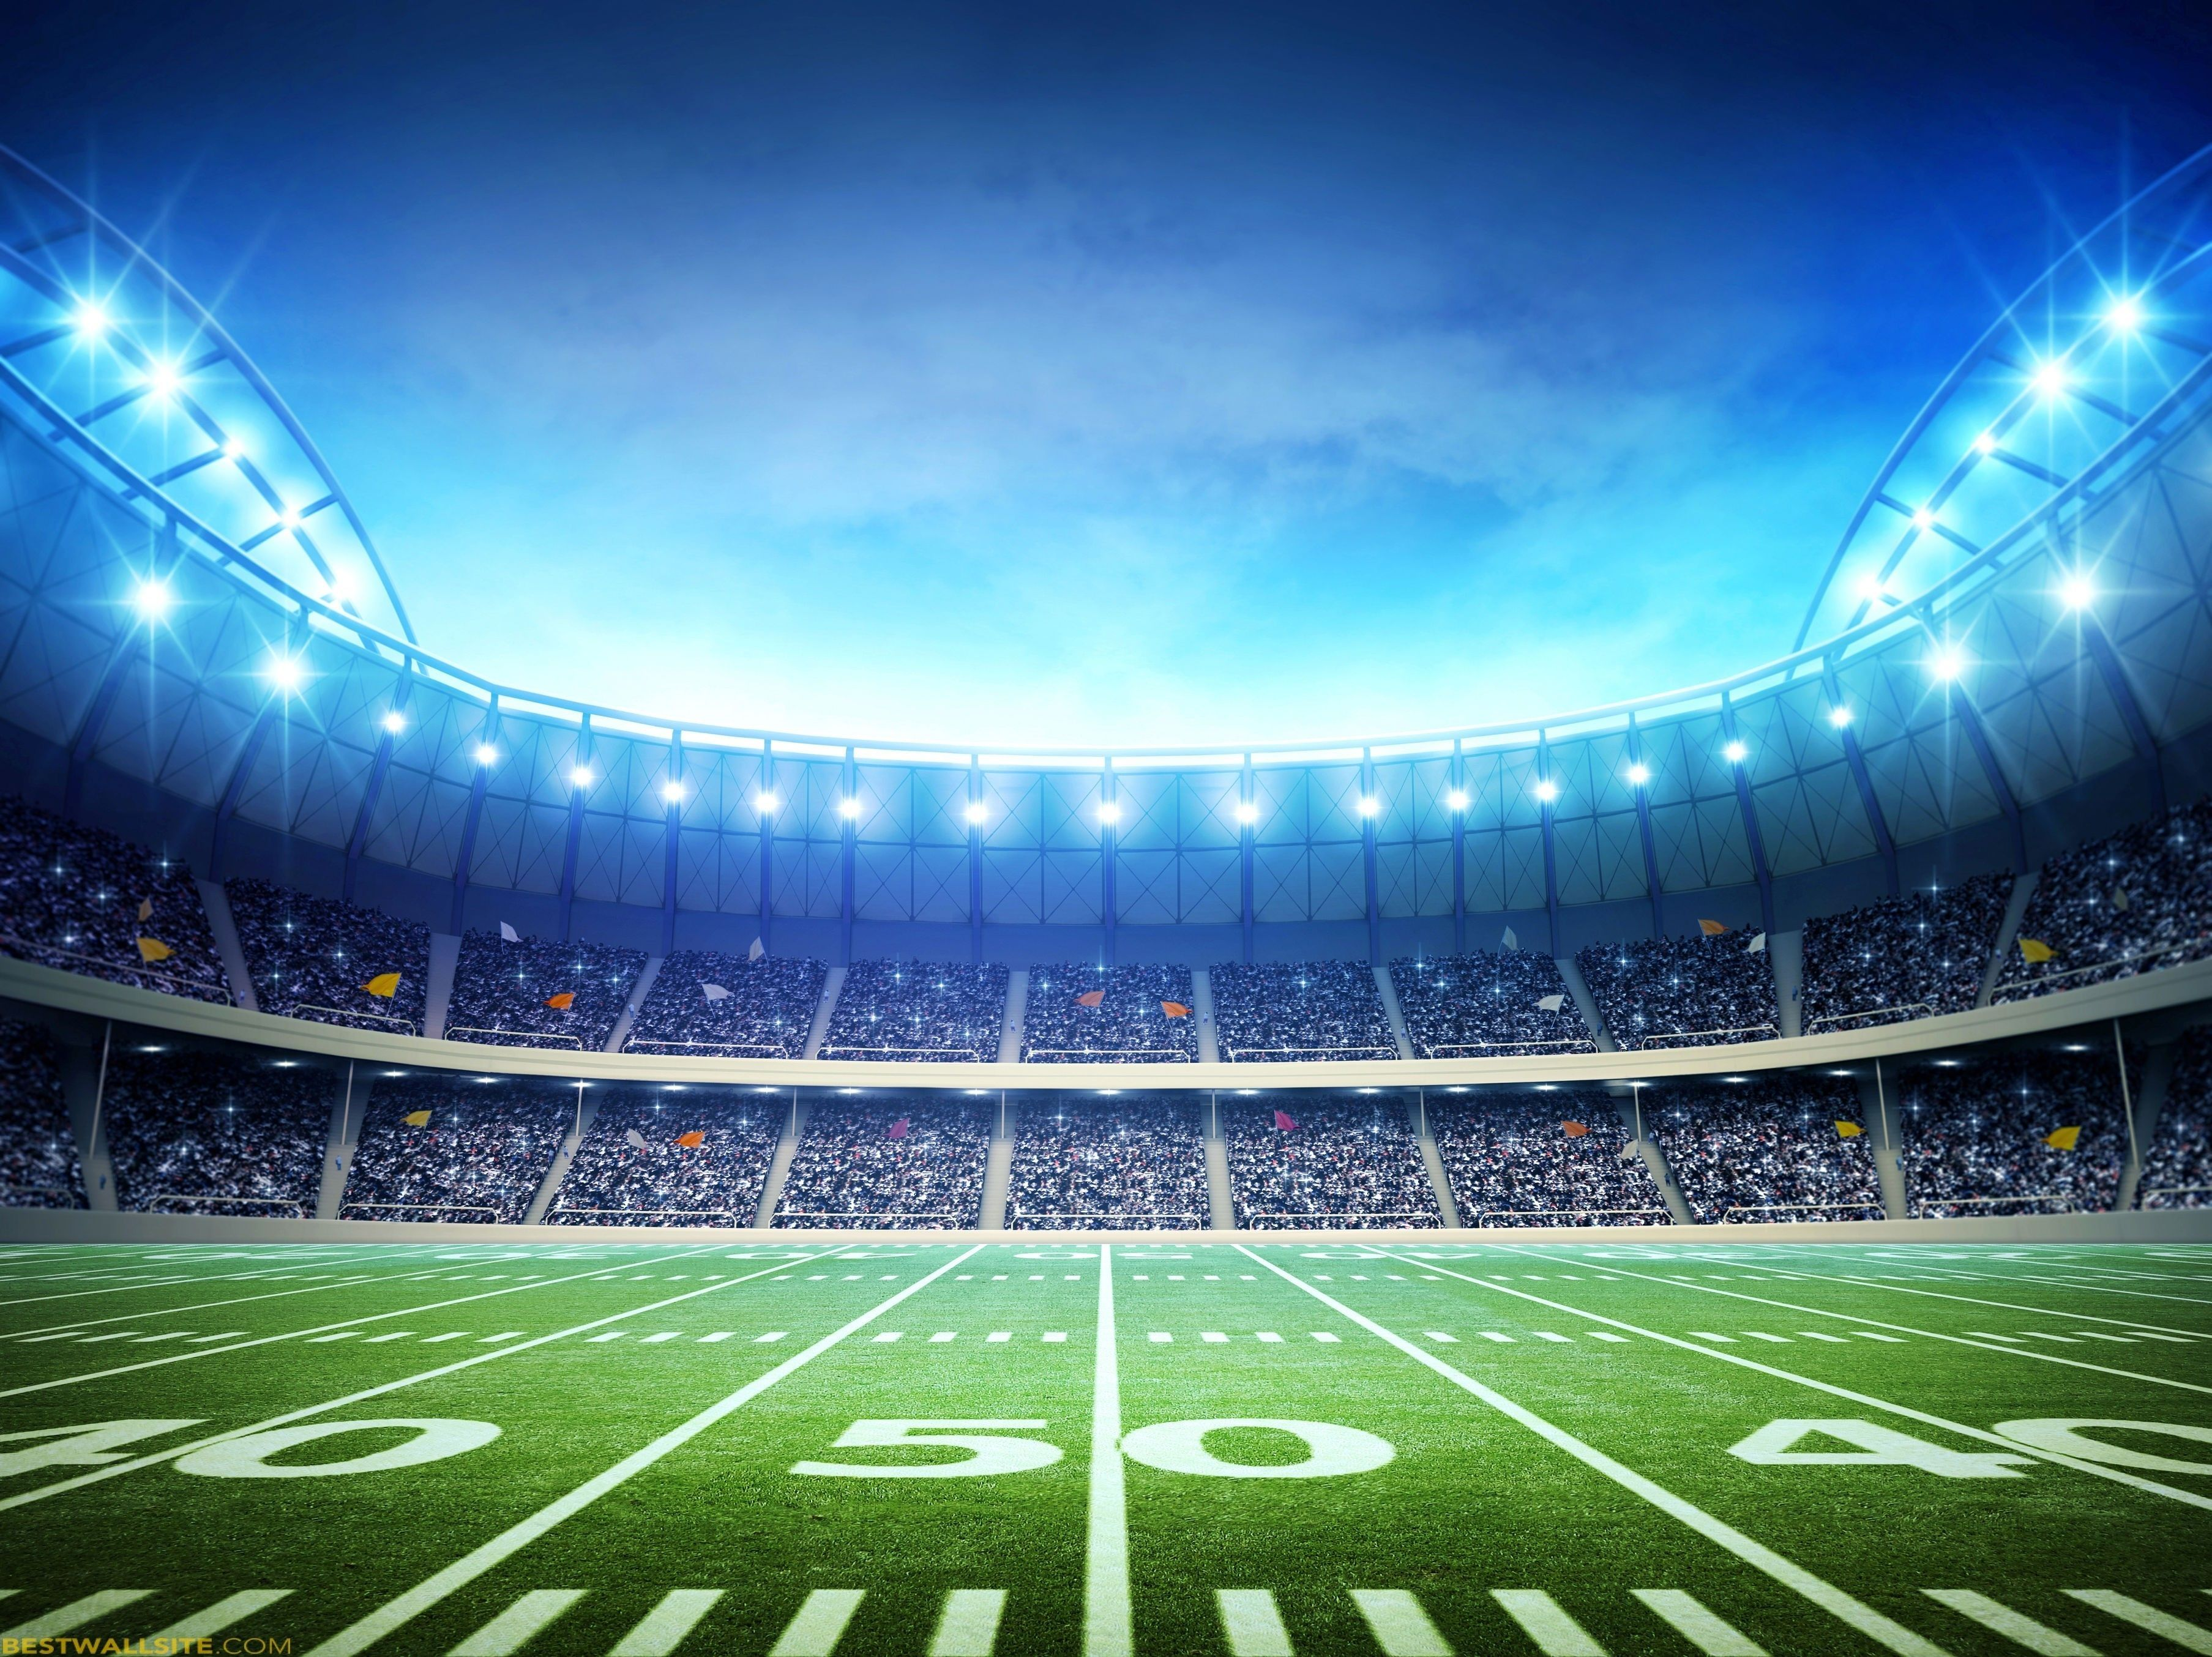 10 Top Nfl Football Stadium Background Full Hd 1080p For Pc Background Stadium Wallpaper Football Stadiums Nfl Football Stadium